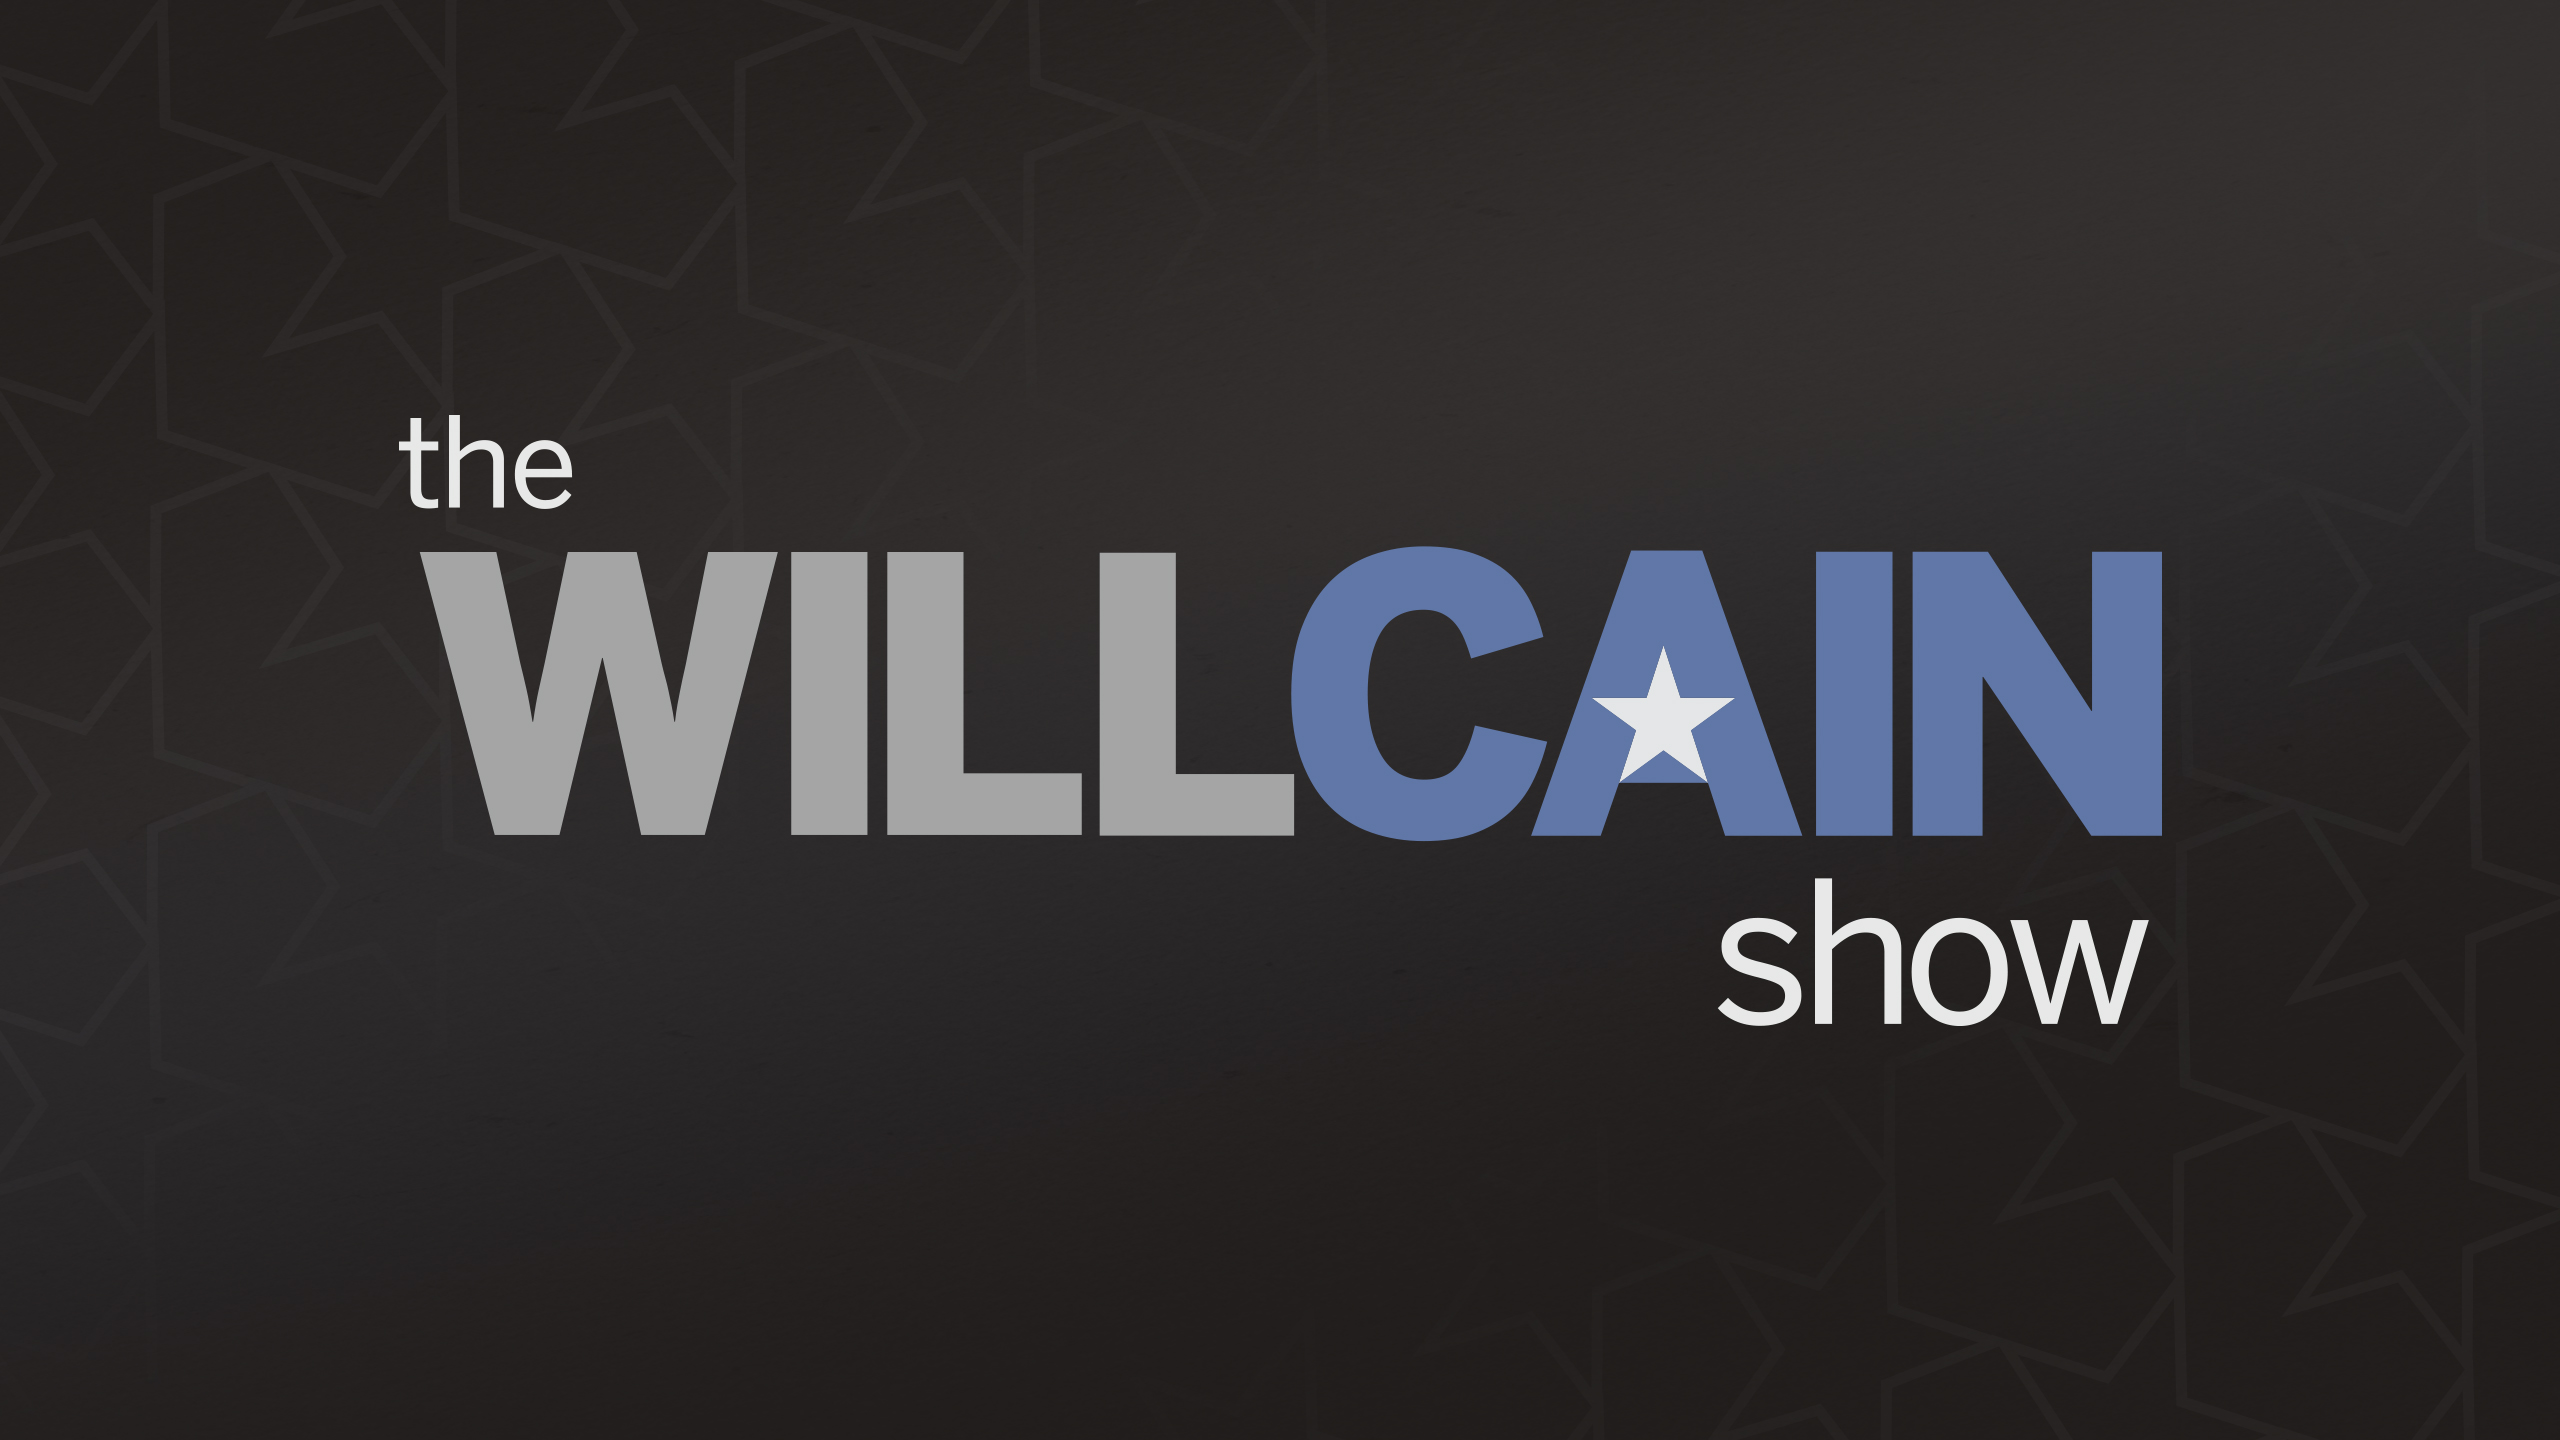 Thu, 10/18 - The Will Cain Show